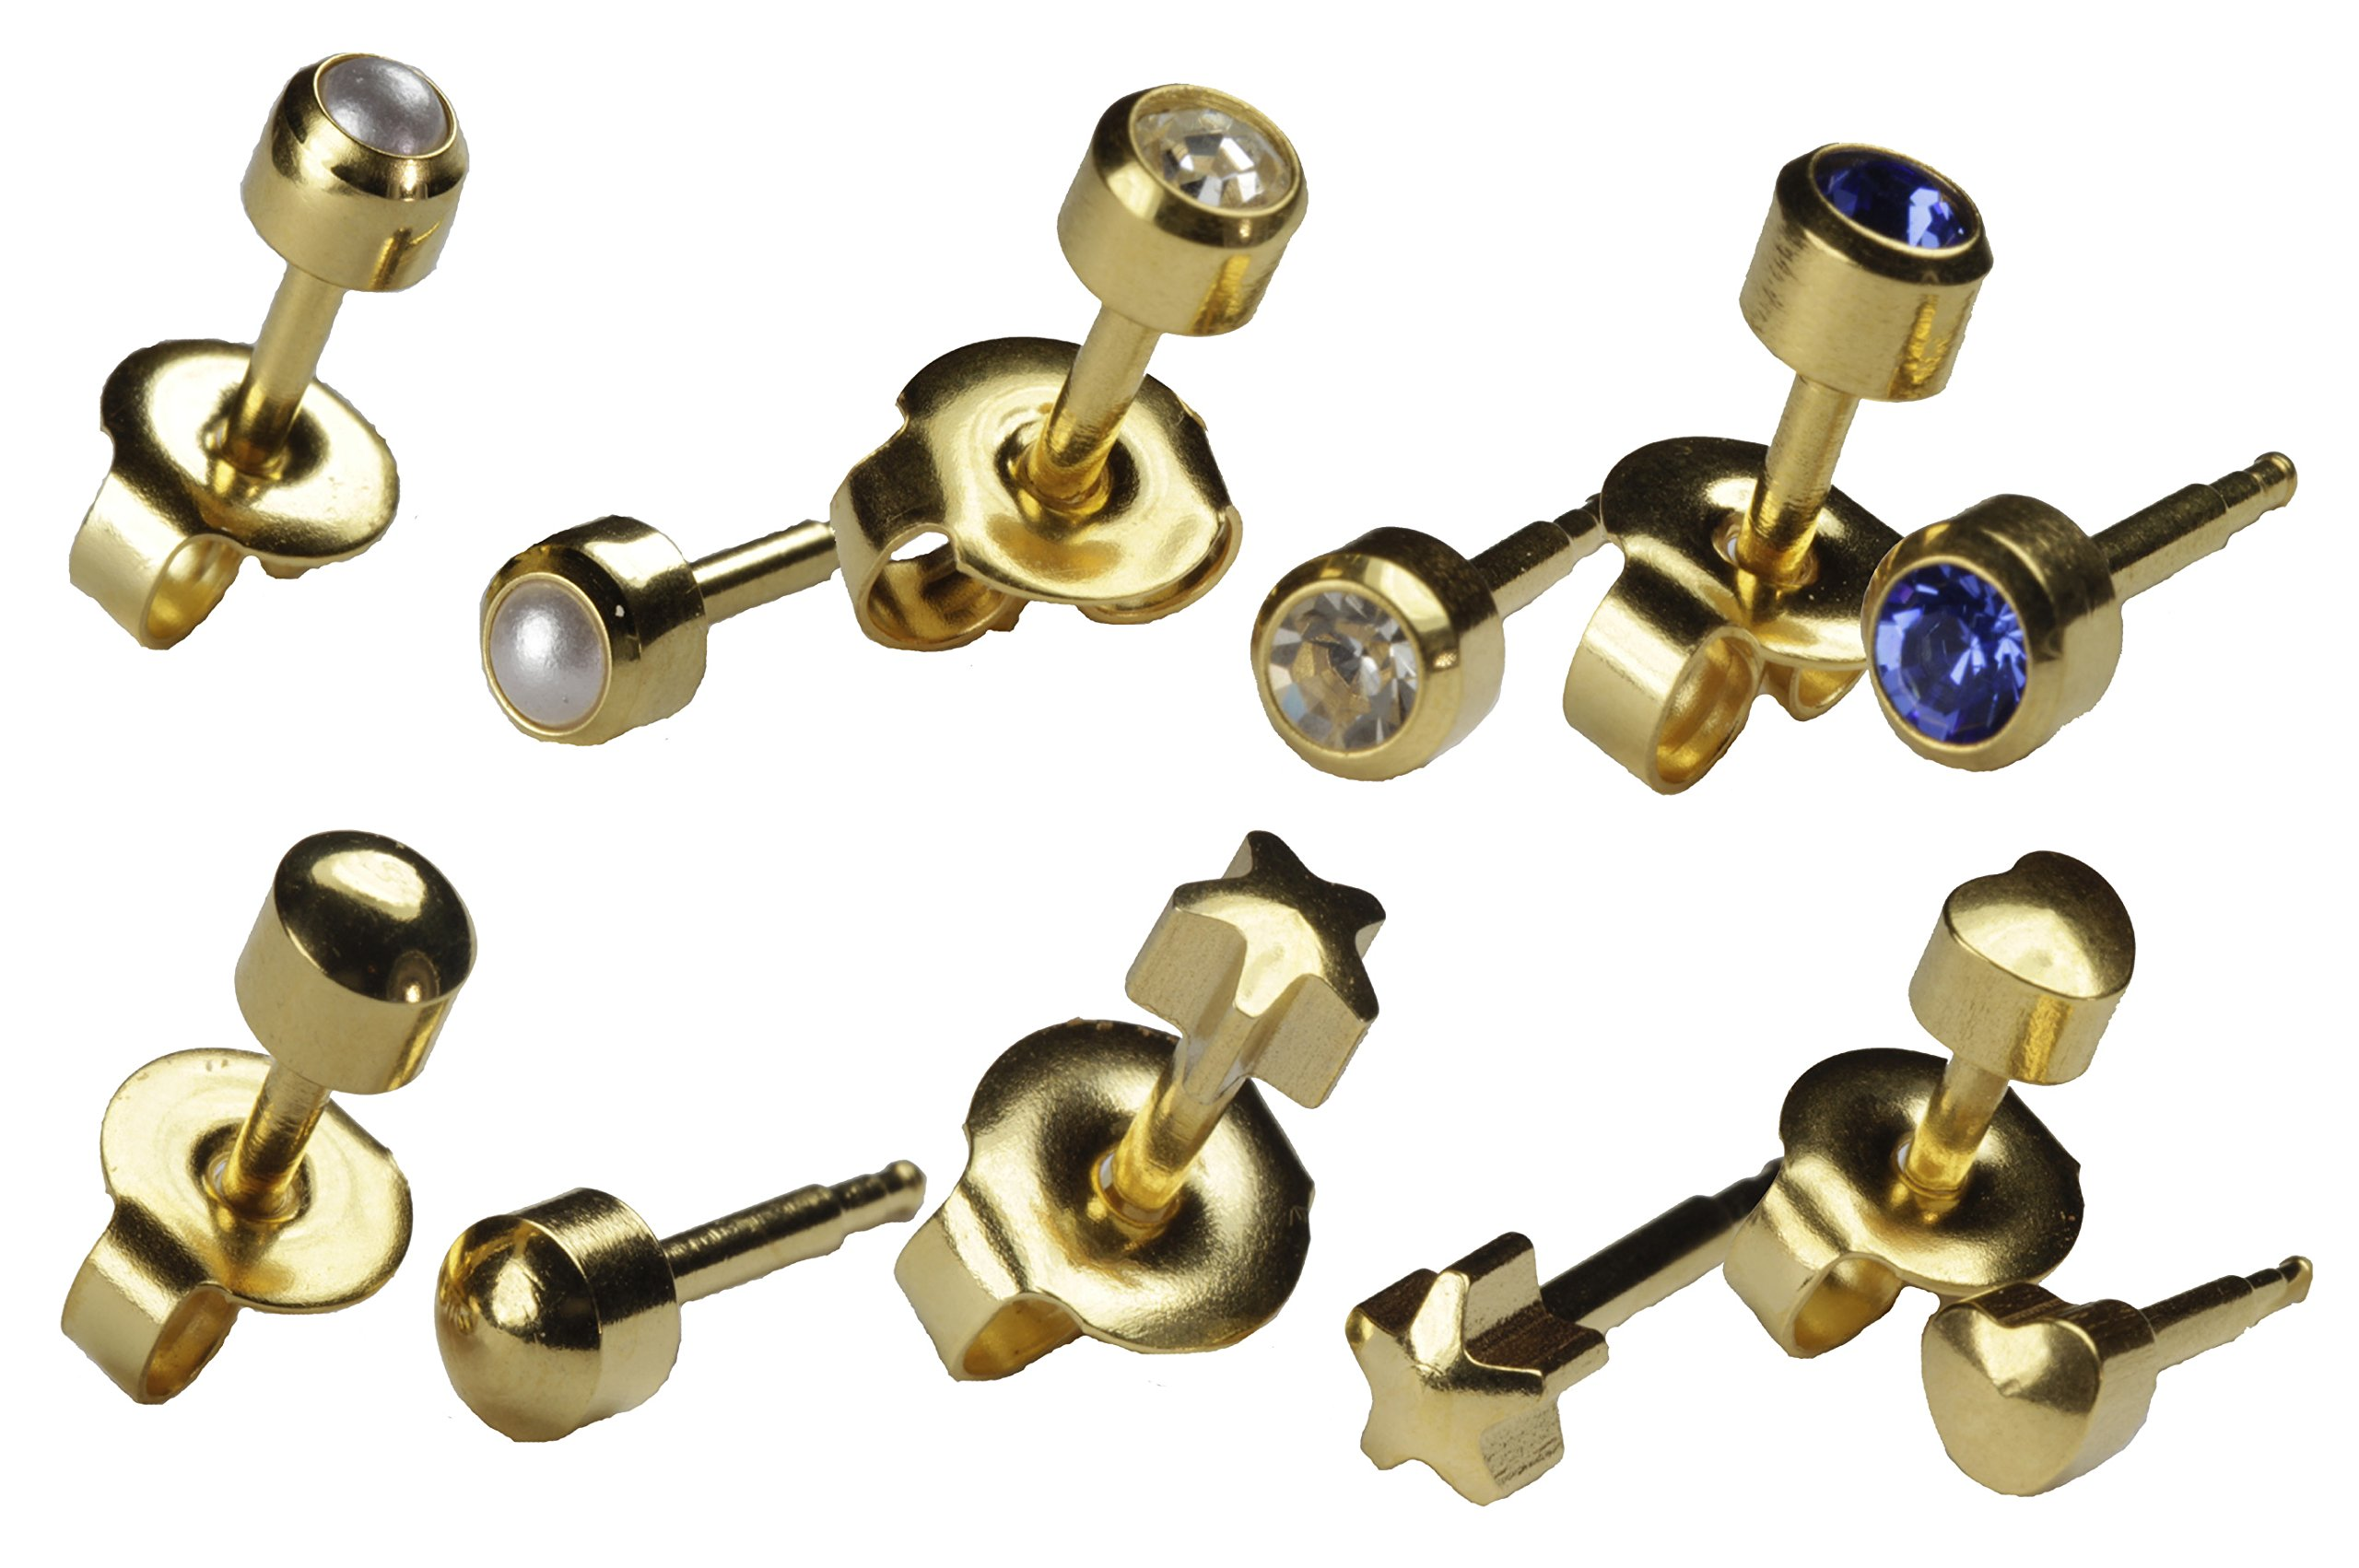 Ear Piercing Earrings 6 Pairs Of 4mm 16ga Gold Studex Studs Hypoallergenic by Studex (Image #1)